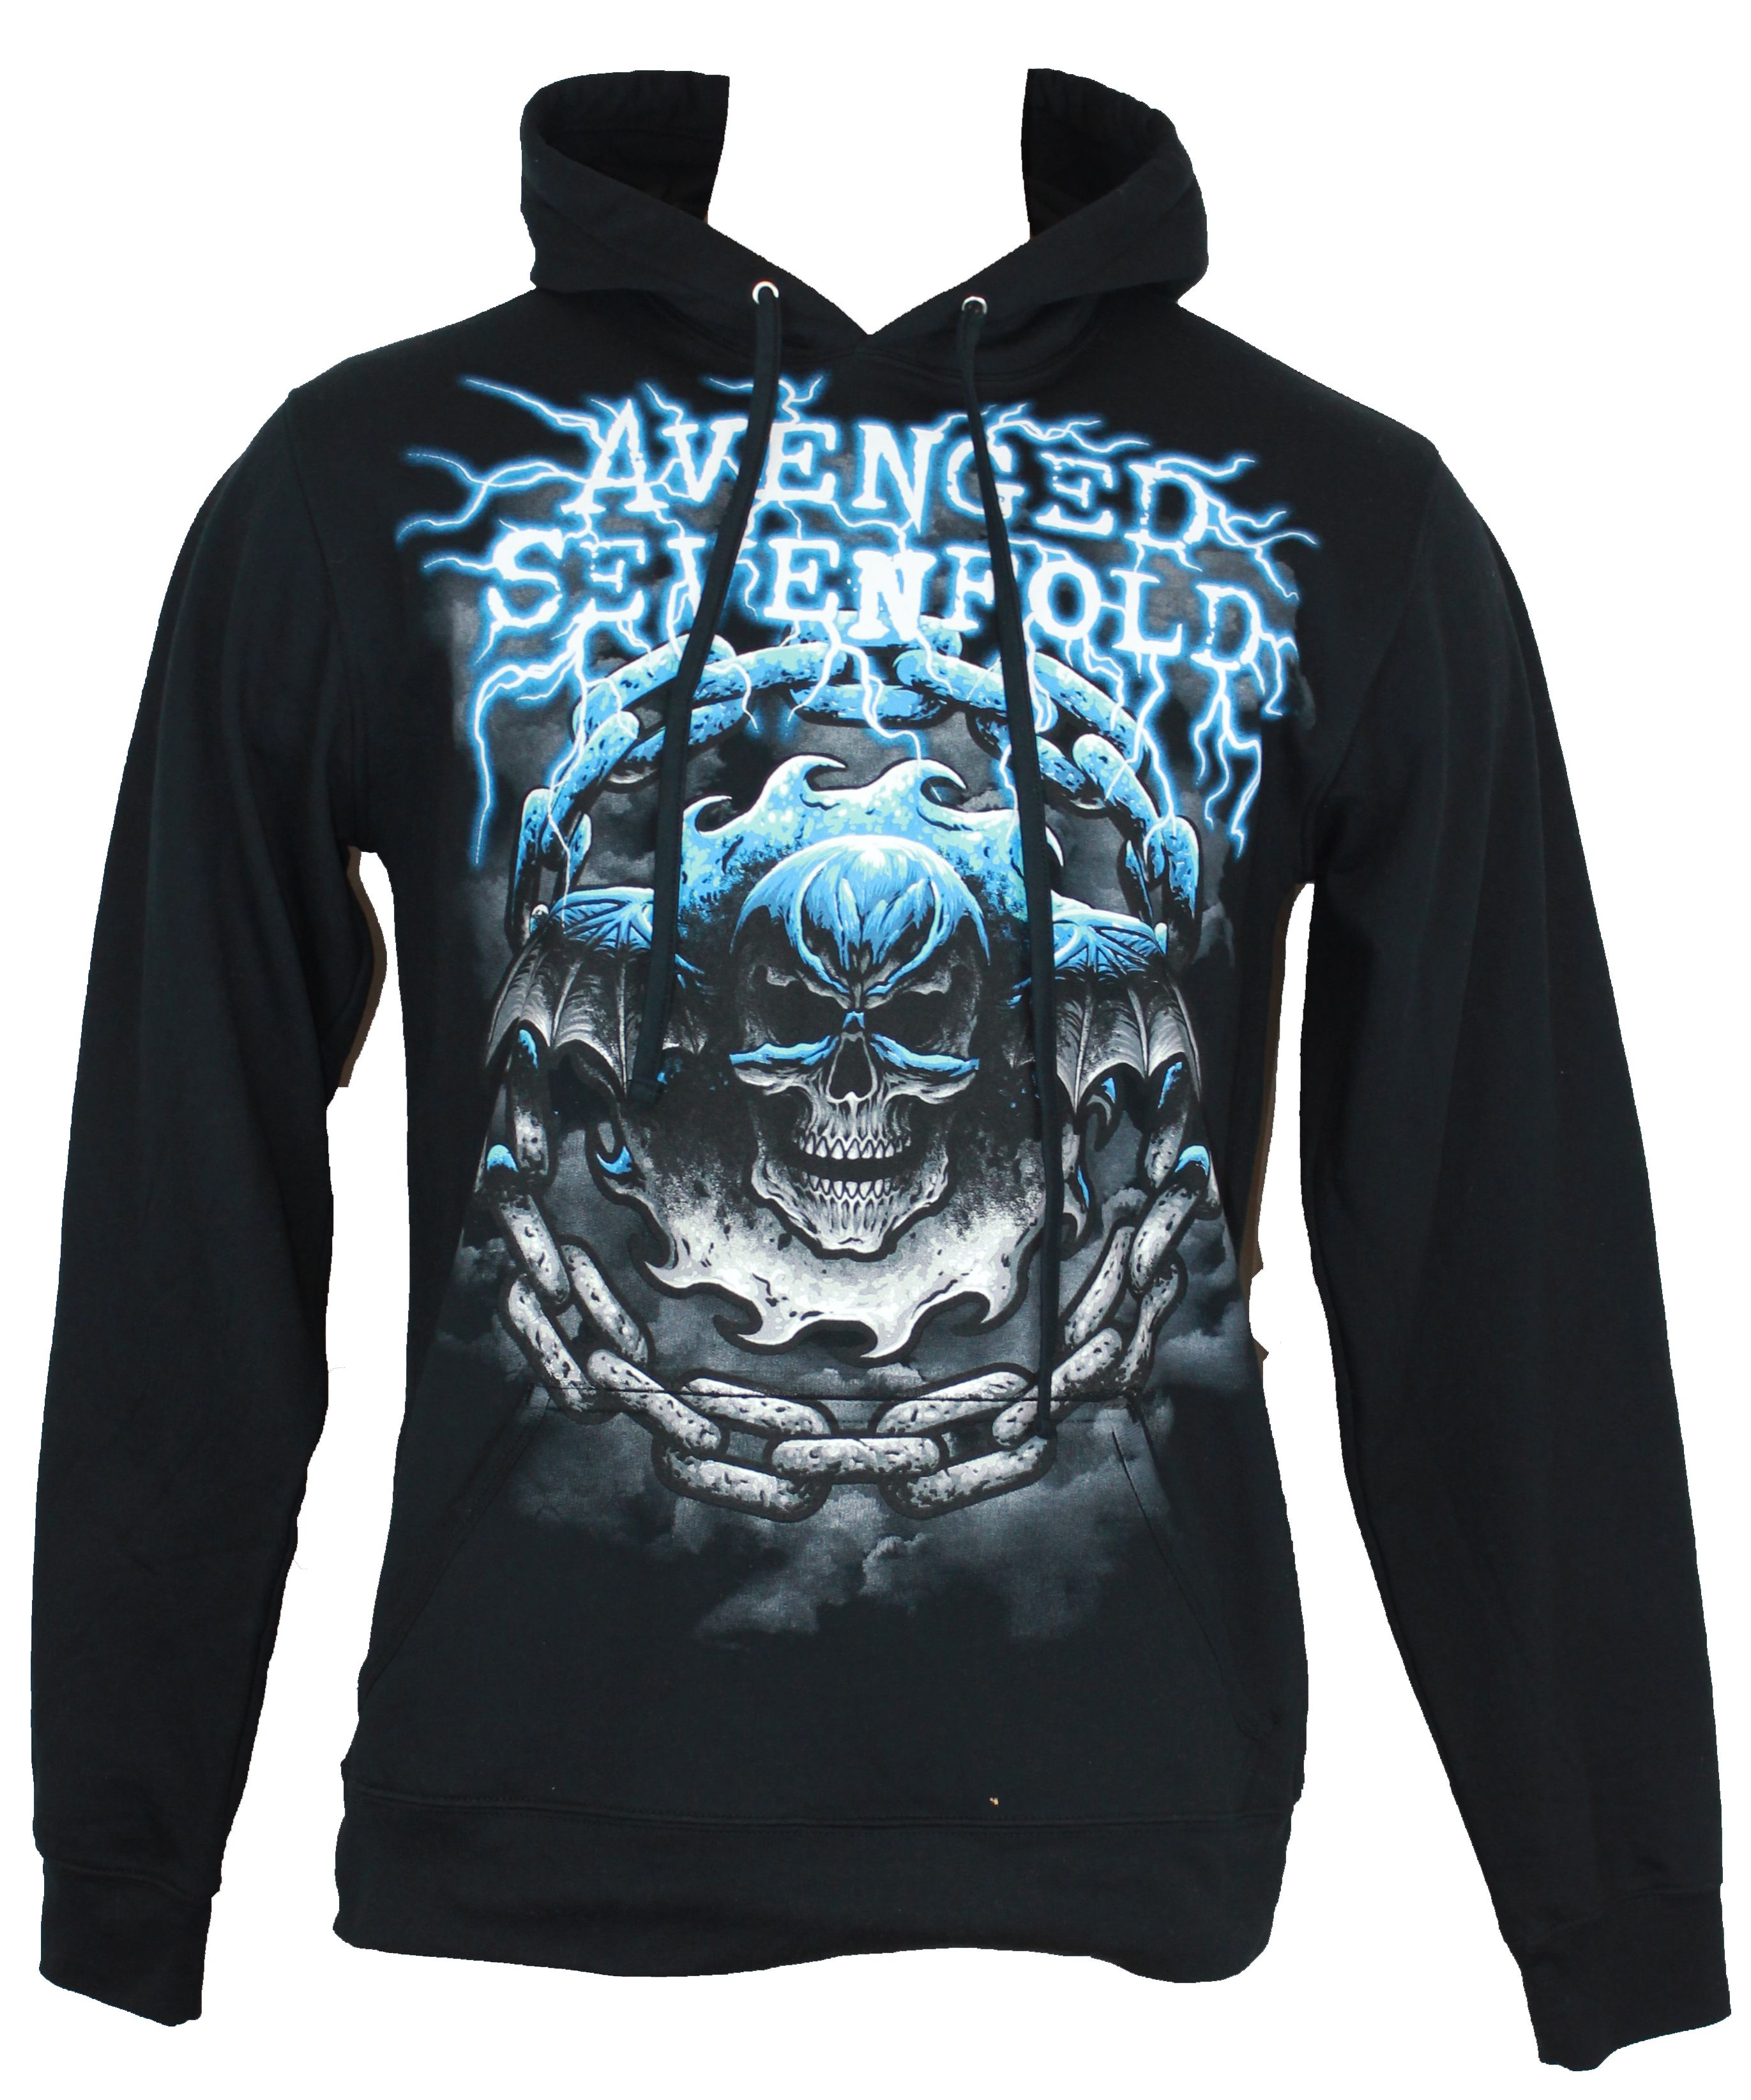 Avenged-Sevenfold-Pull-Over-Hoodie-Sweatshirt-Electrified-Batwing